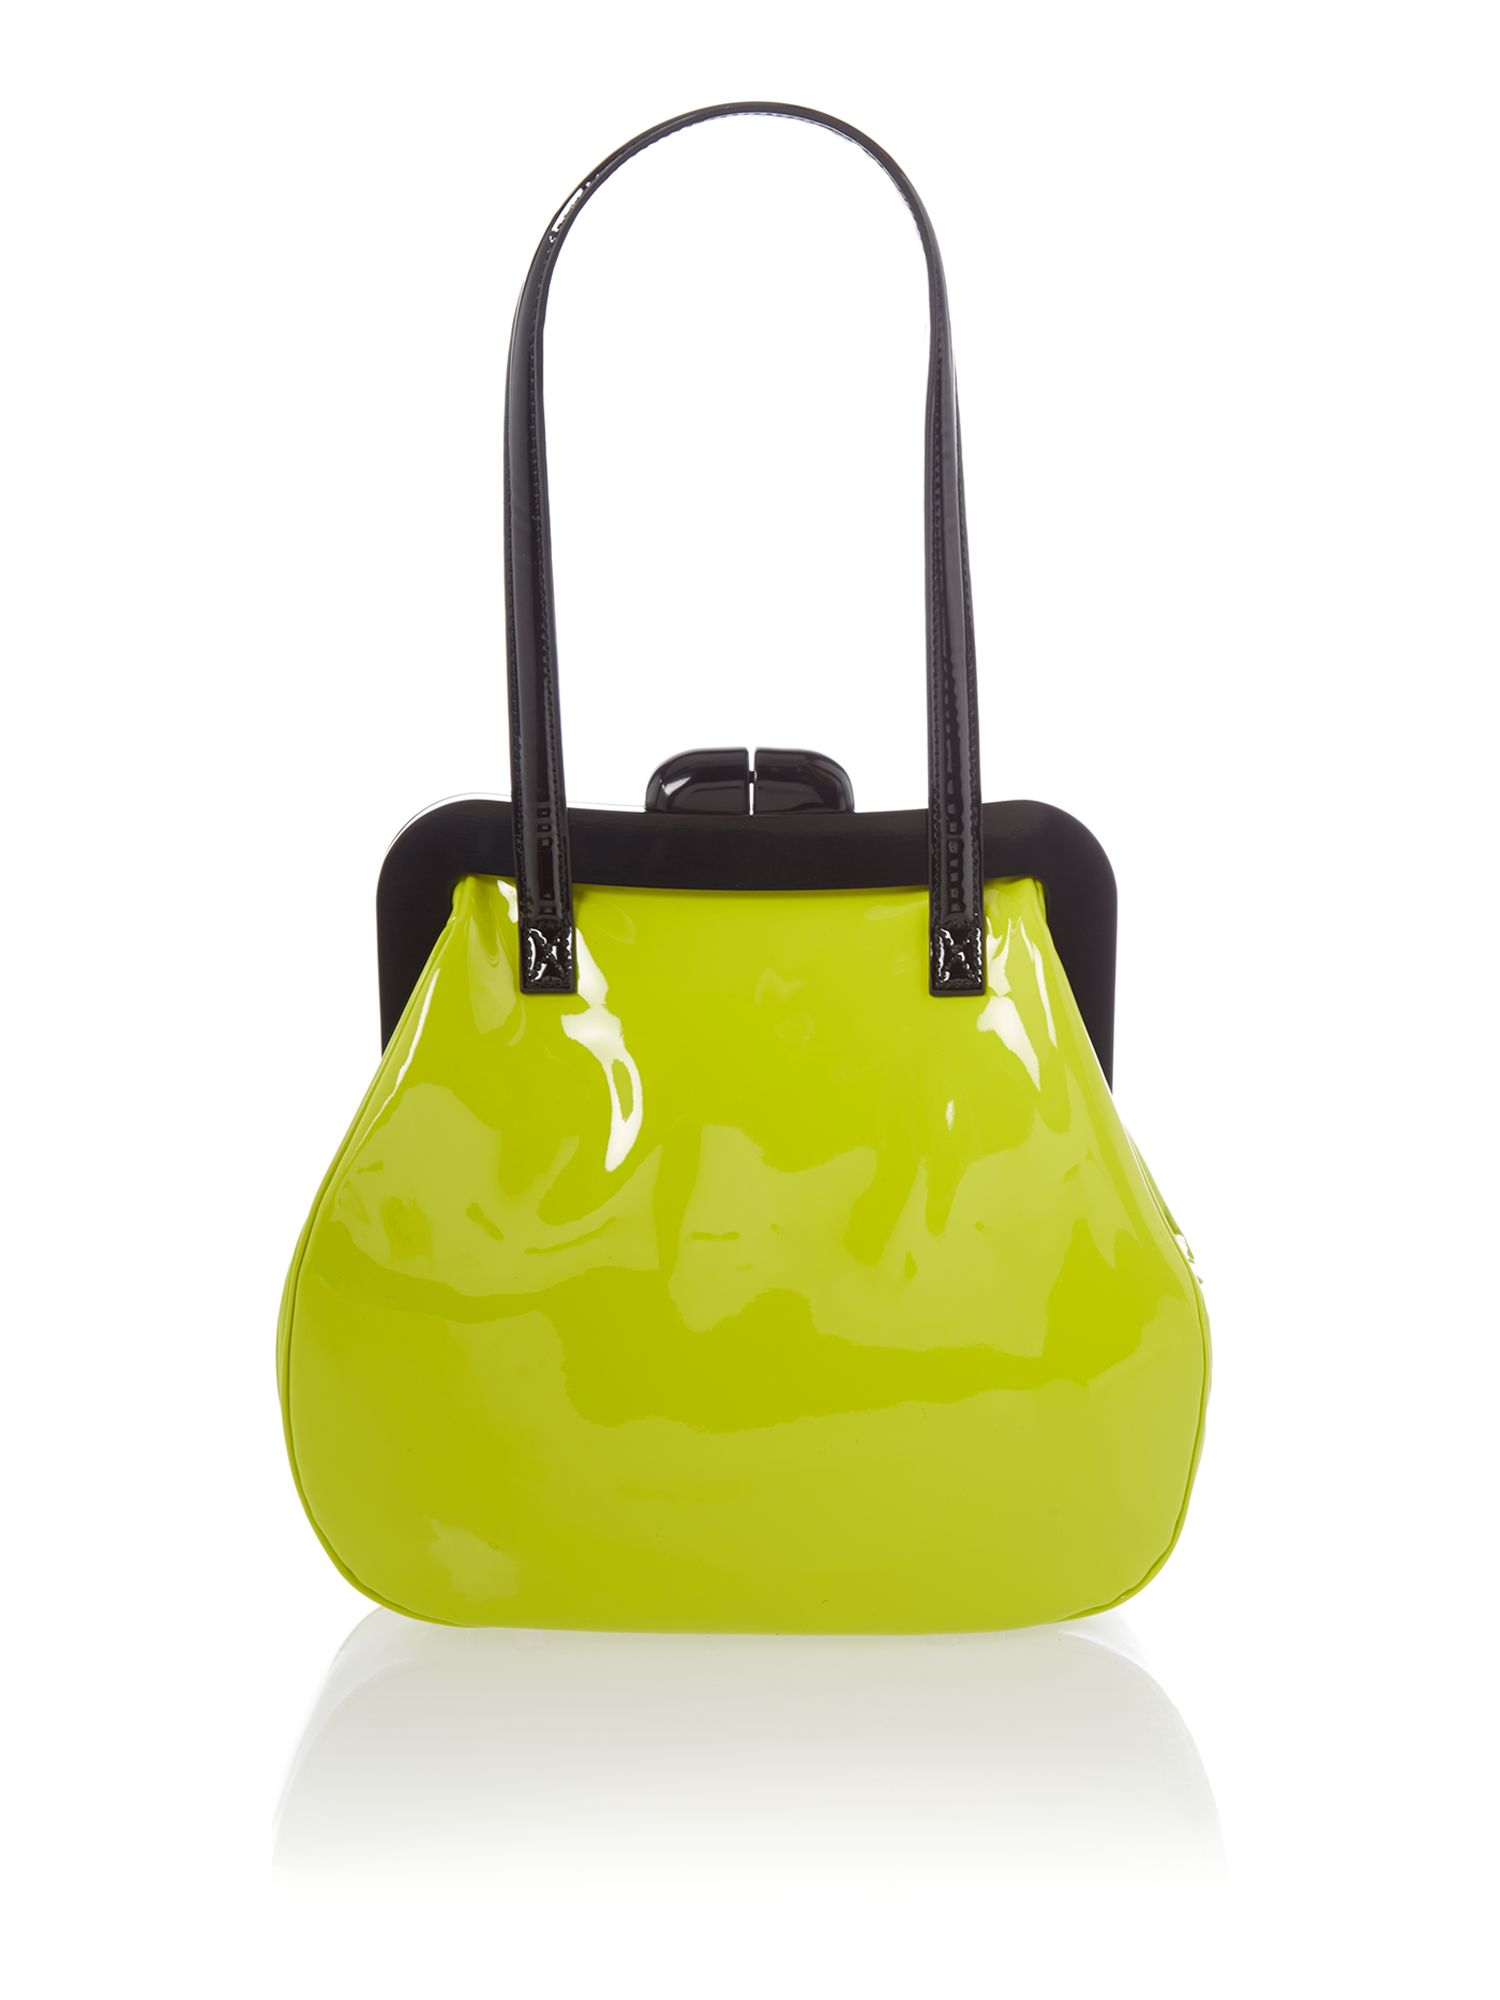 Pollyanna patent yellow shoulder bag